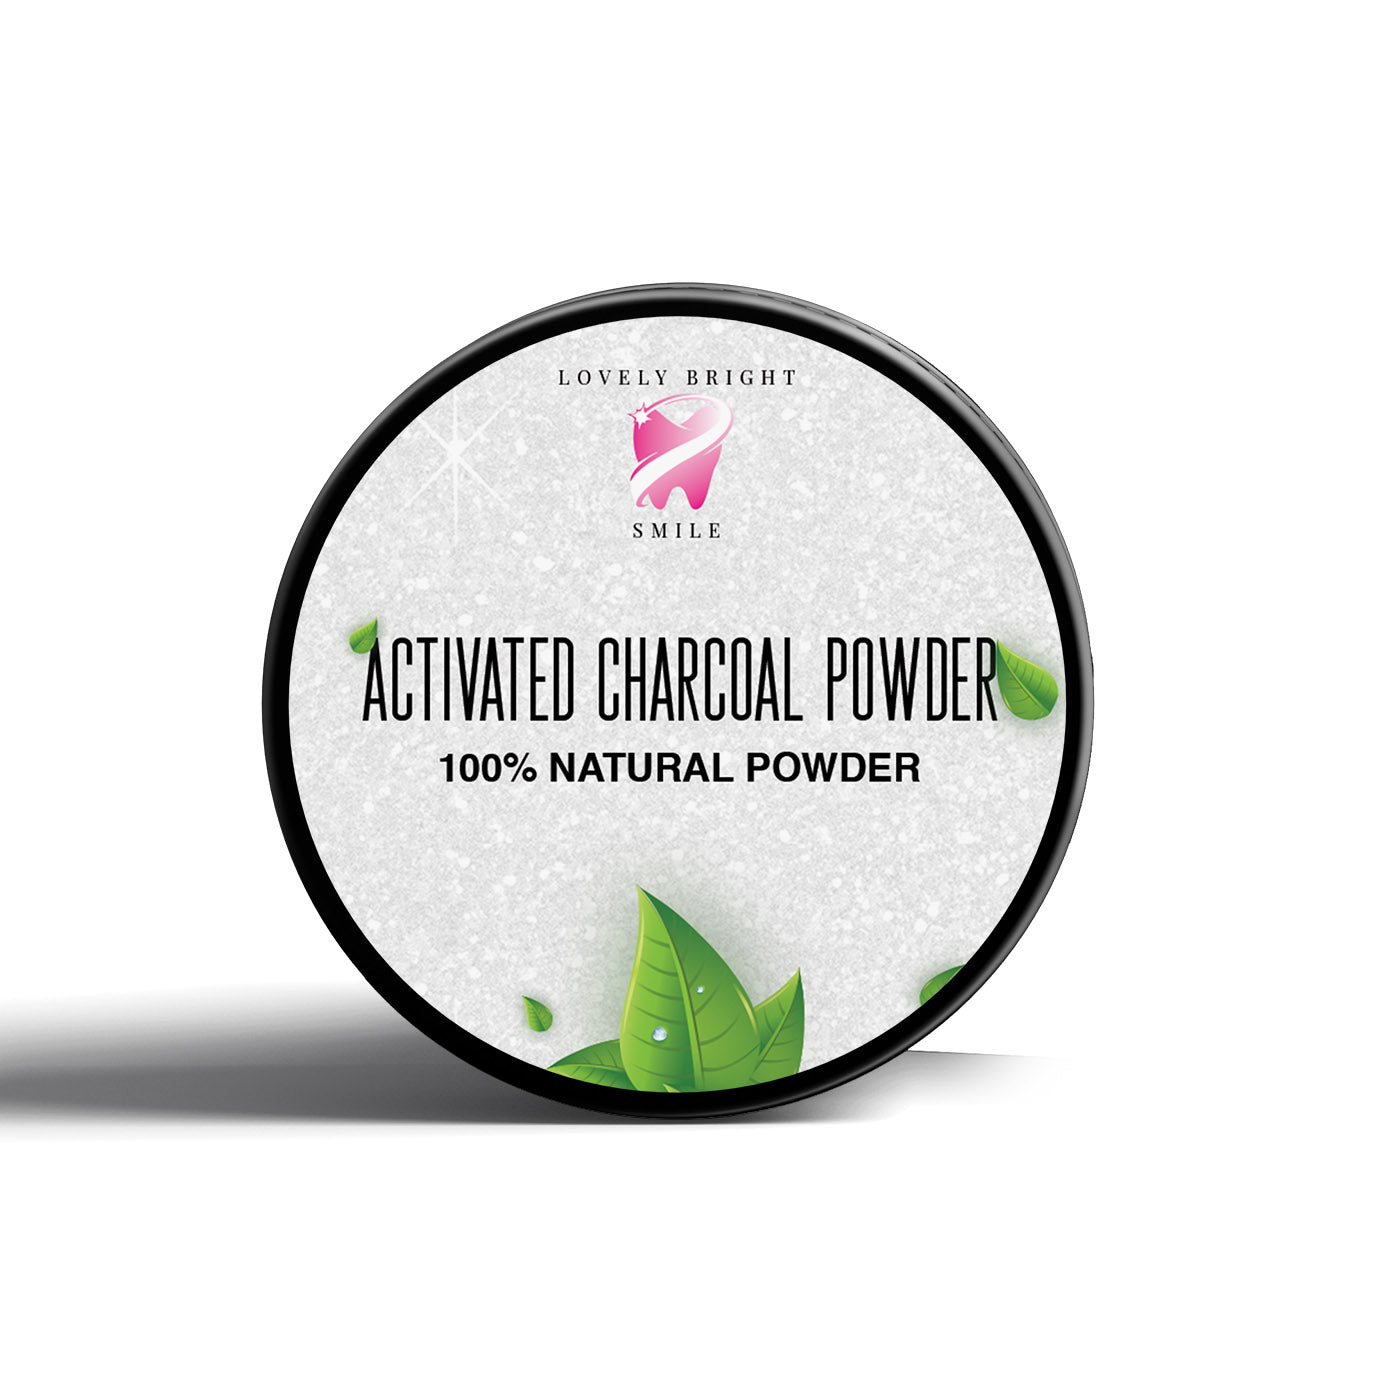 Mint Activated Charcoal Teeth Whitening Powder